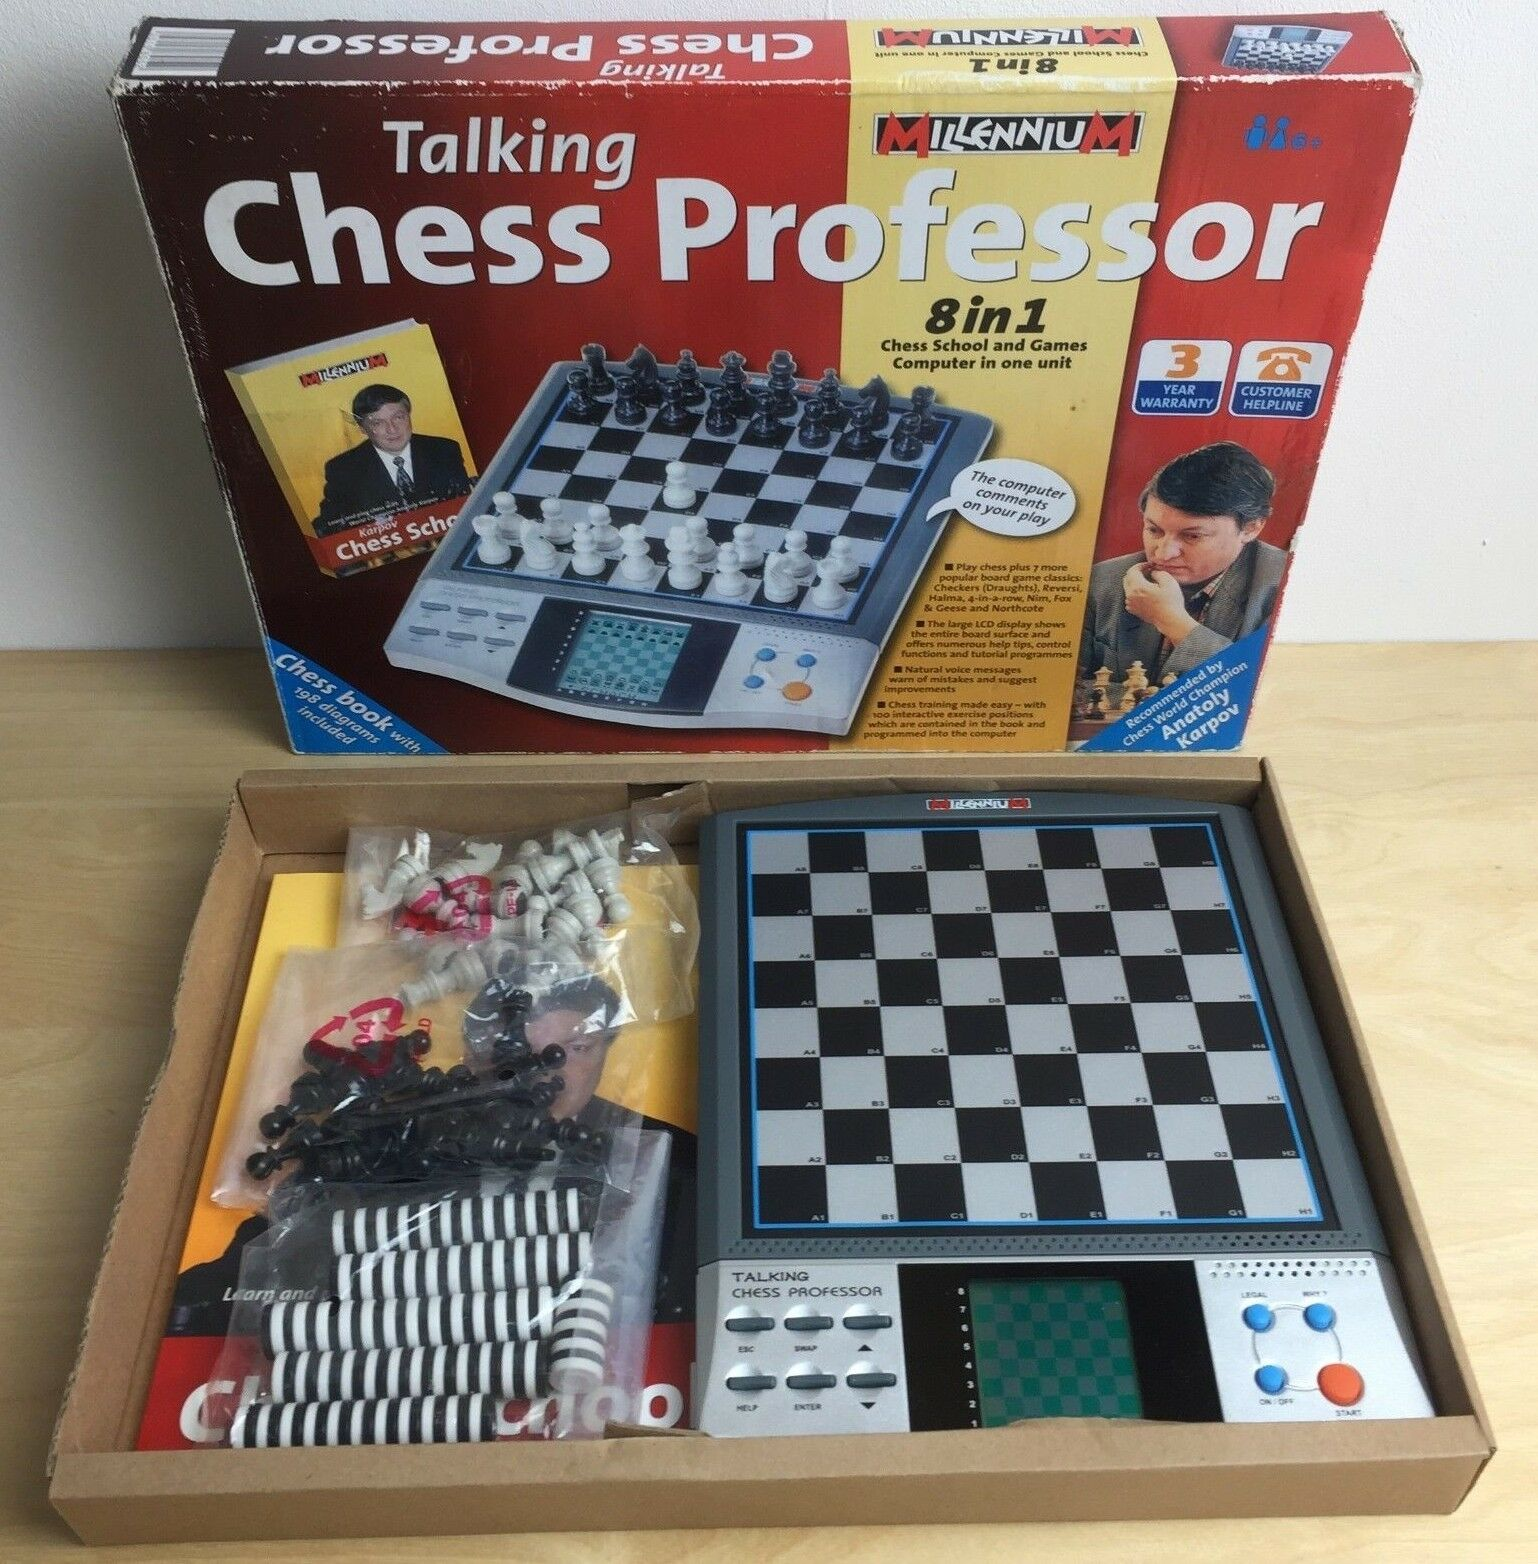 TALKING CHESS PROFESSOR 8 in 1 Chess School and Games Computer by Millennium New